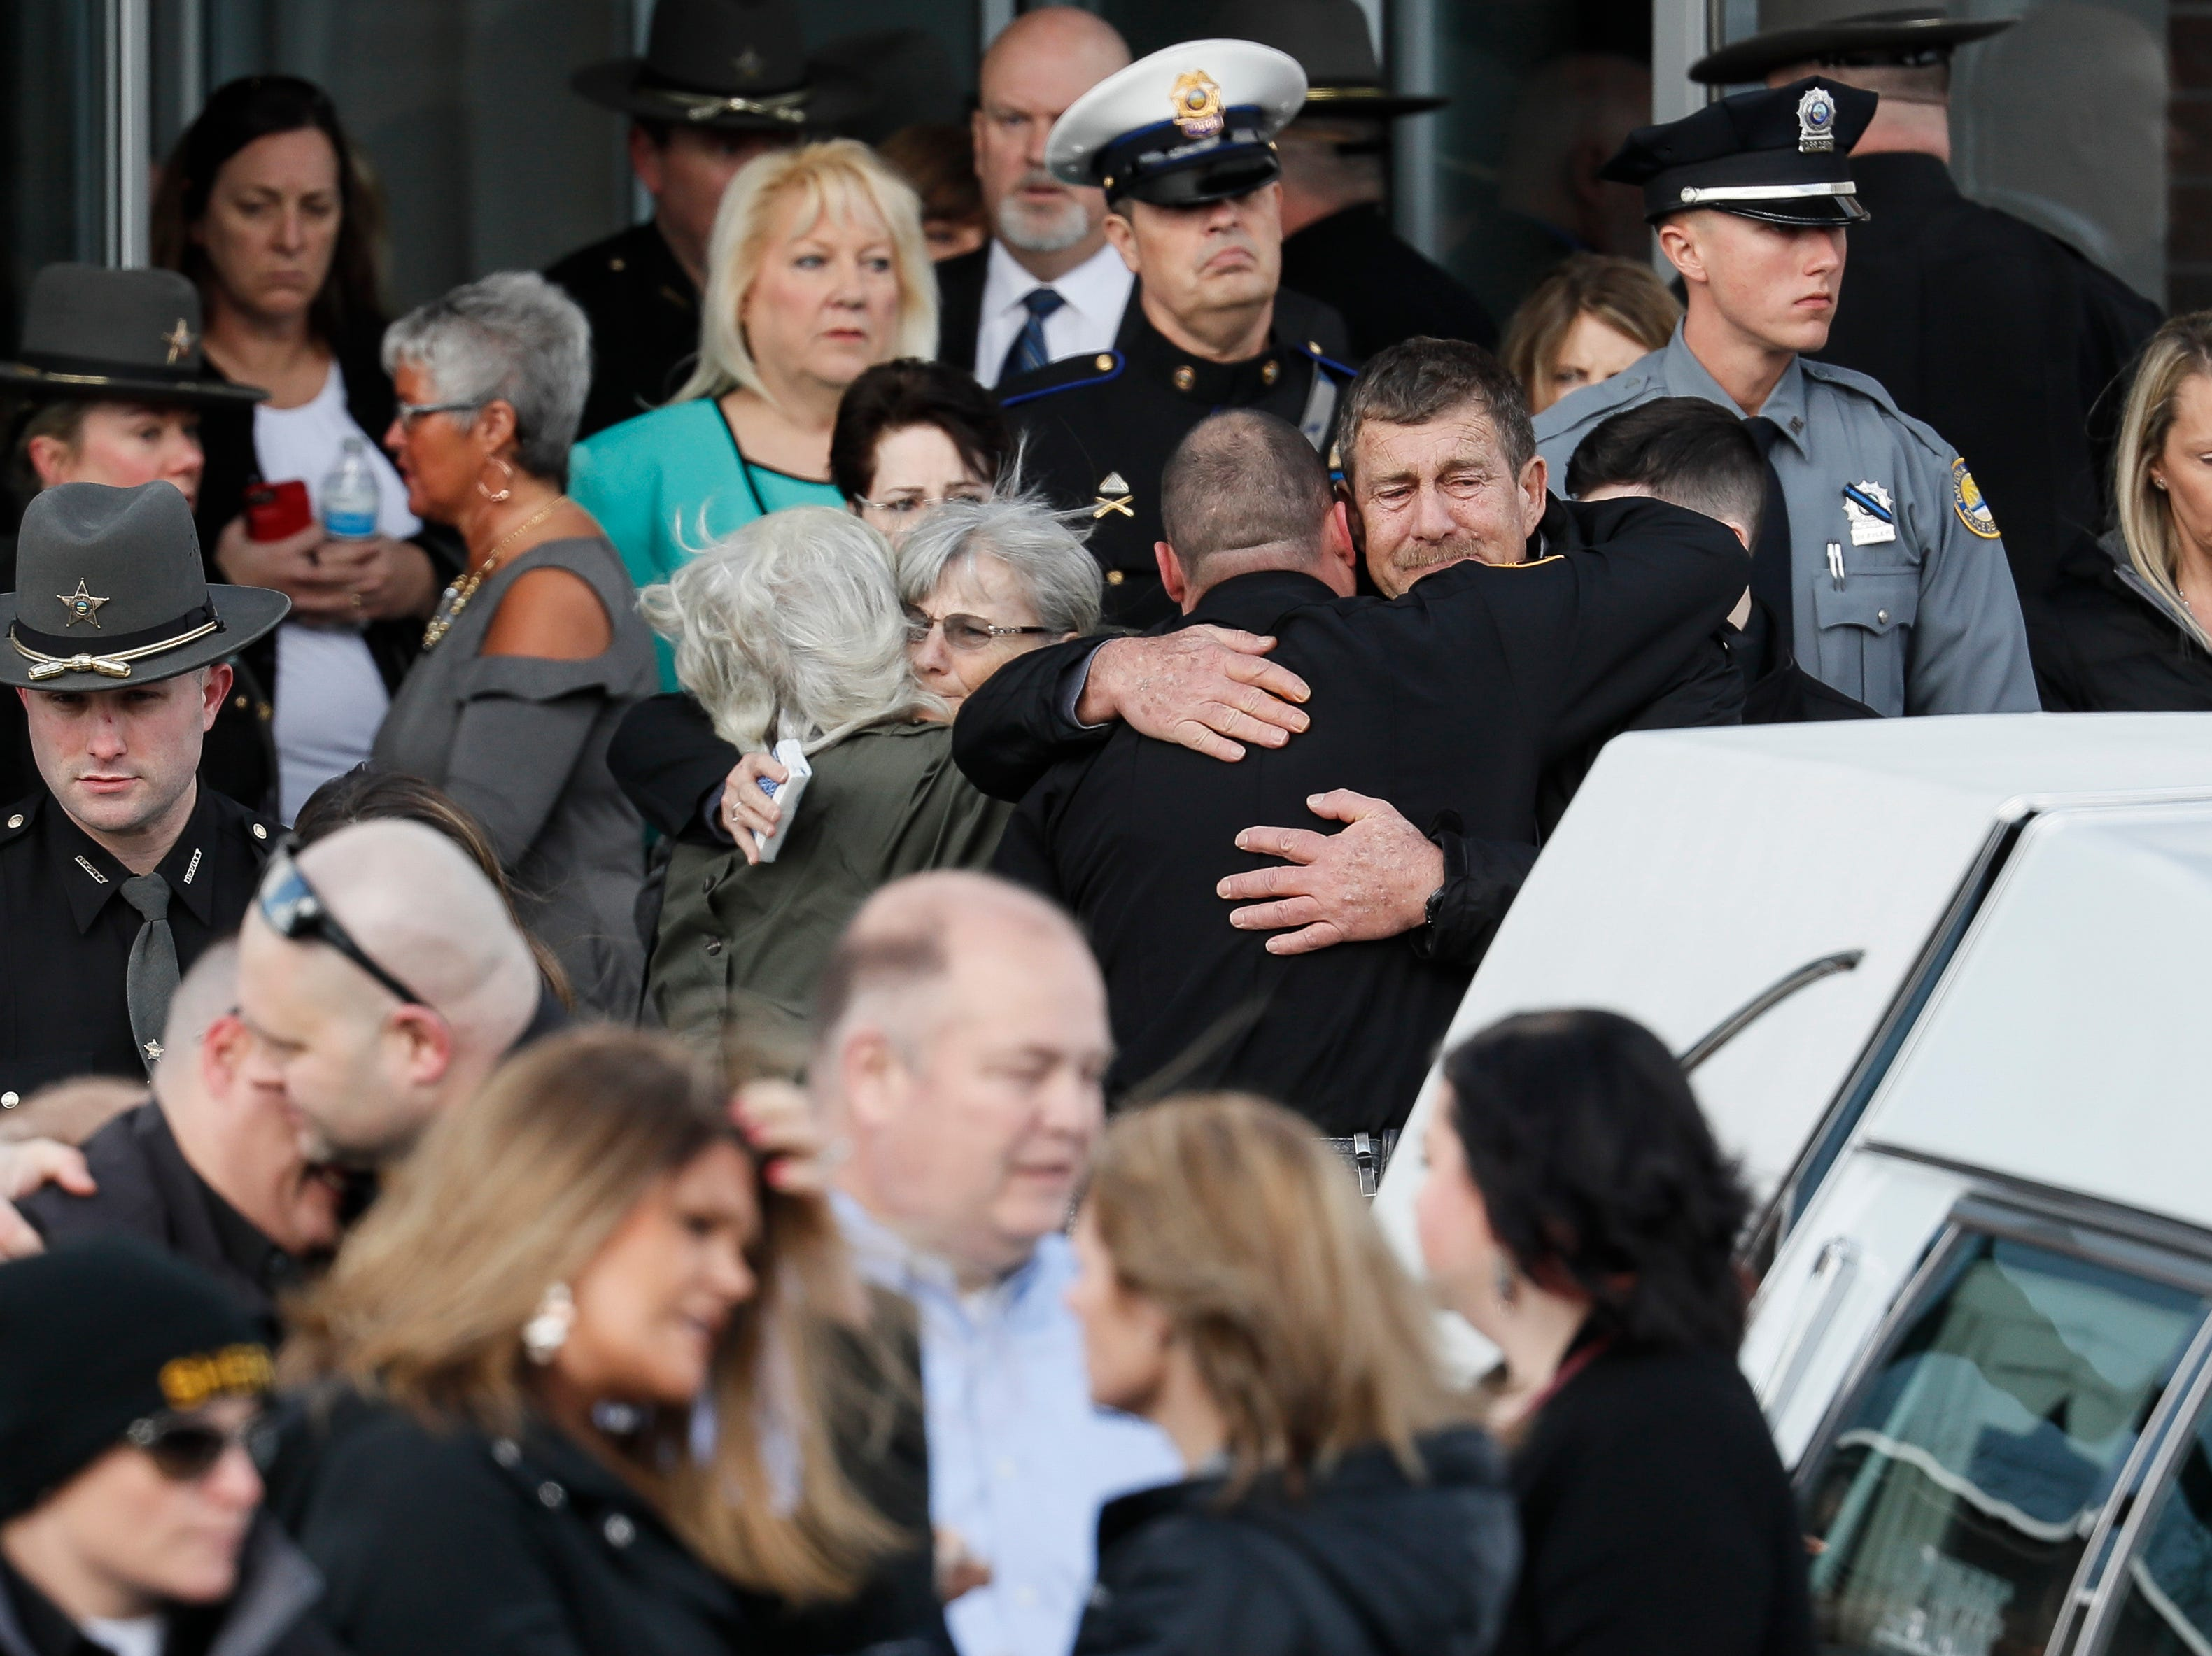 Officers and mourners react after the casket of Detective Bill Brewer, a 20-year veteran of the Clermont County Sheriff's Office, is placed into a hearse outside of Mt. Carmel Christian Church during funeral ceremonies, Friday, Feb. 8, 2019, in Batavia, Ohio. Authorities in the Cincinnati region are reeling after the deaths of five police officers in less than two months. (AP Photo/John Minchillo)